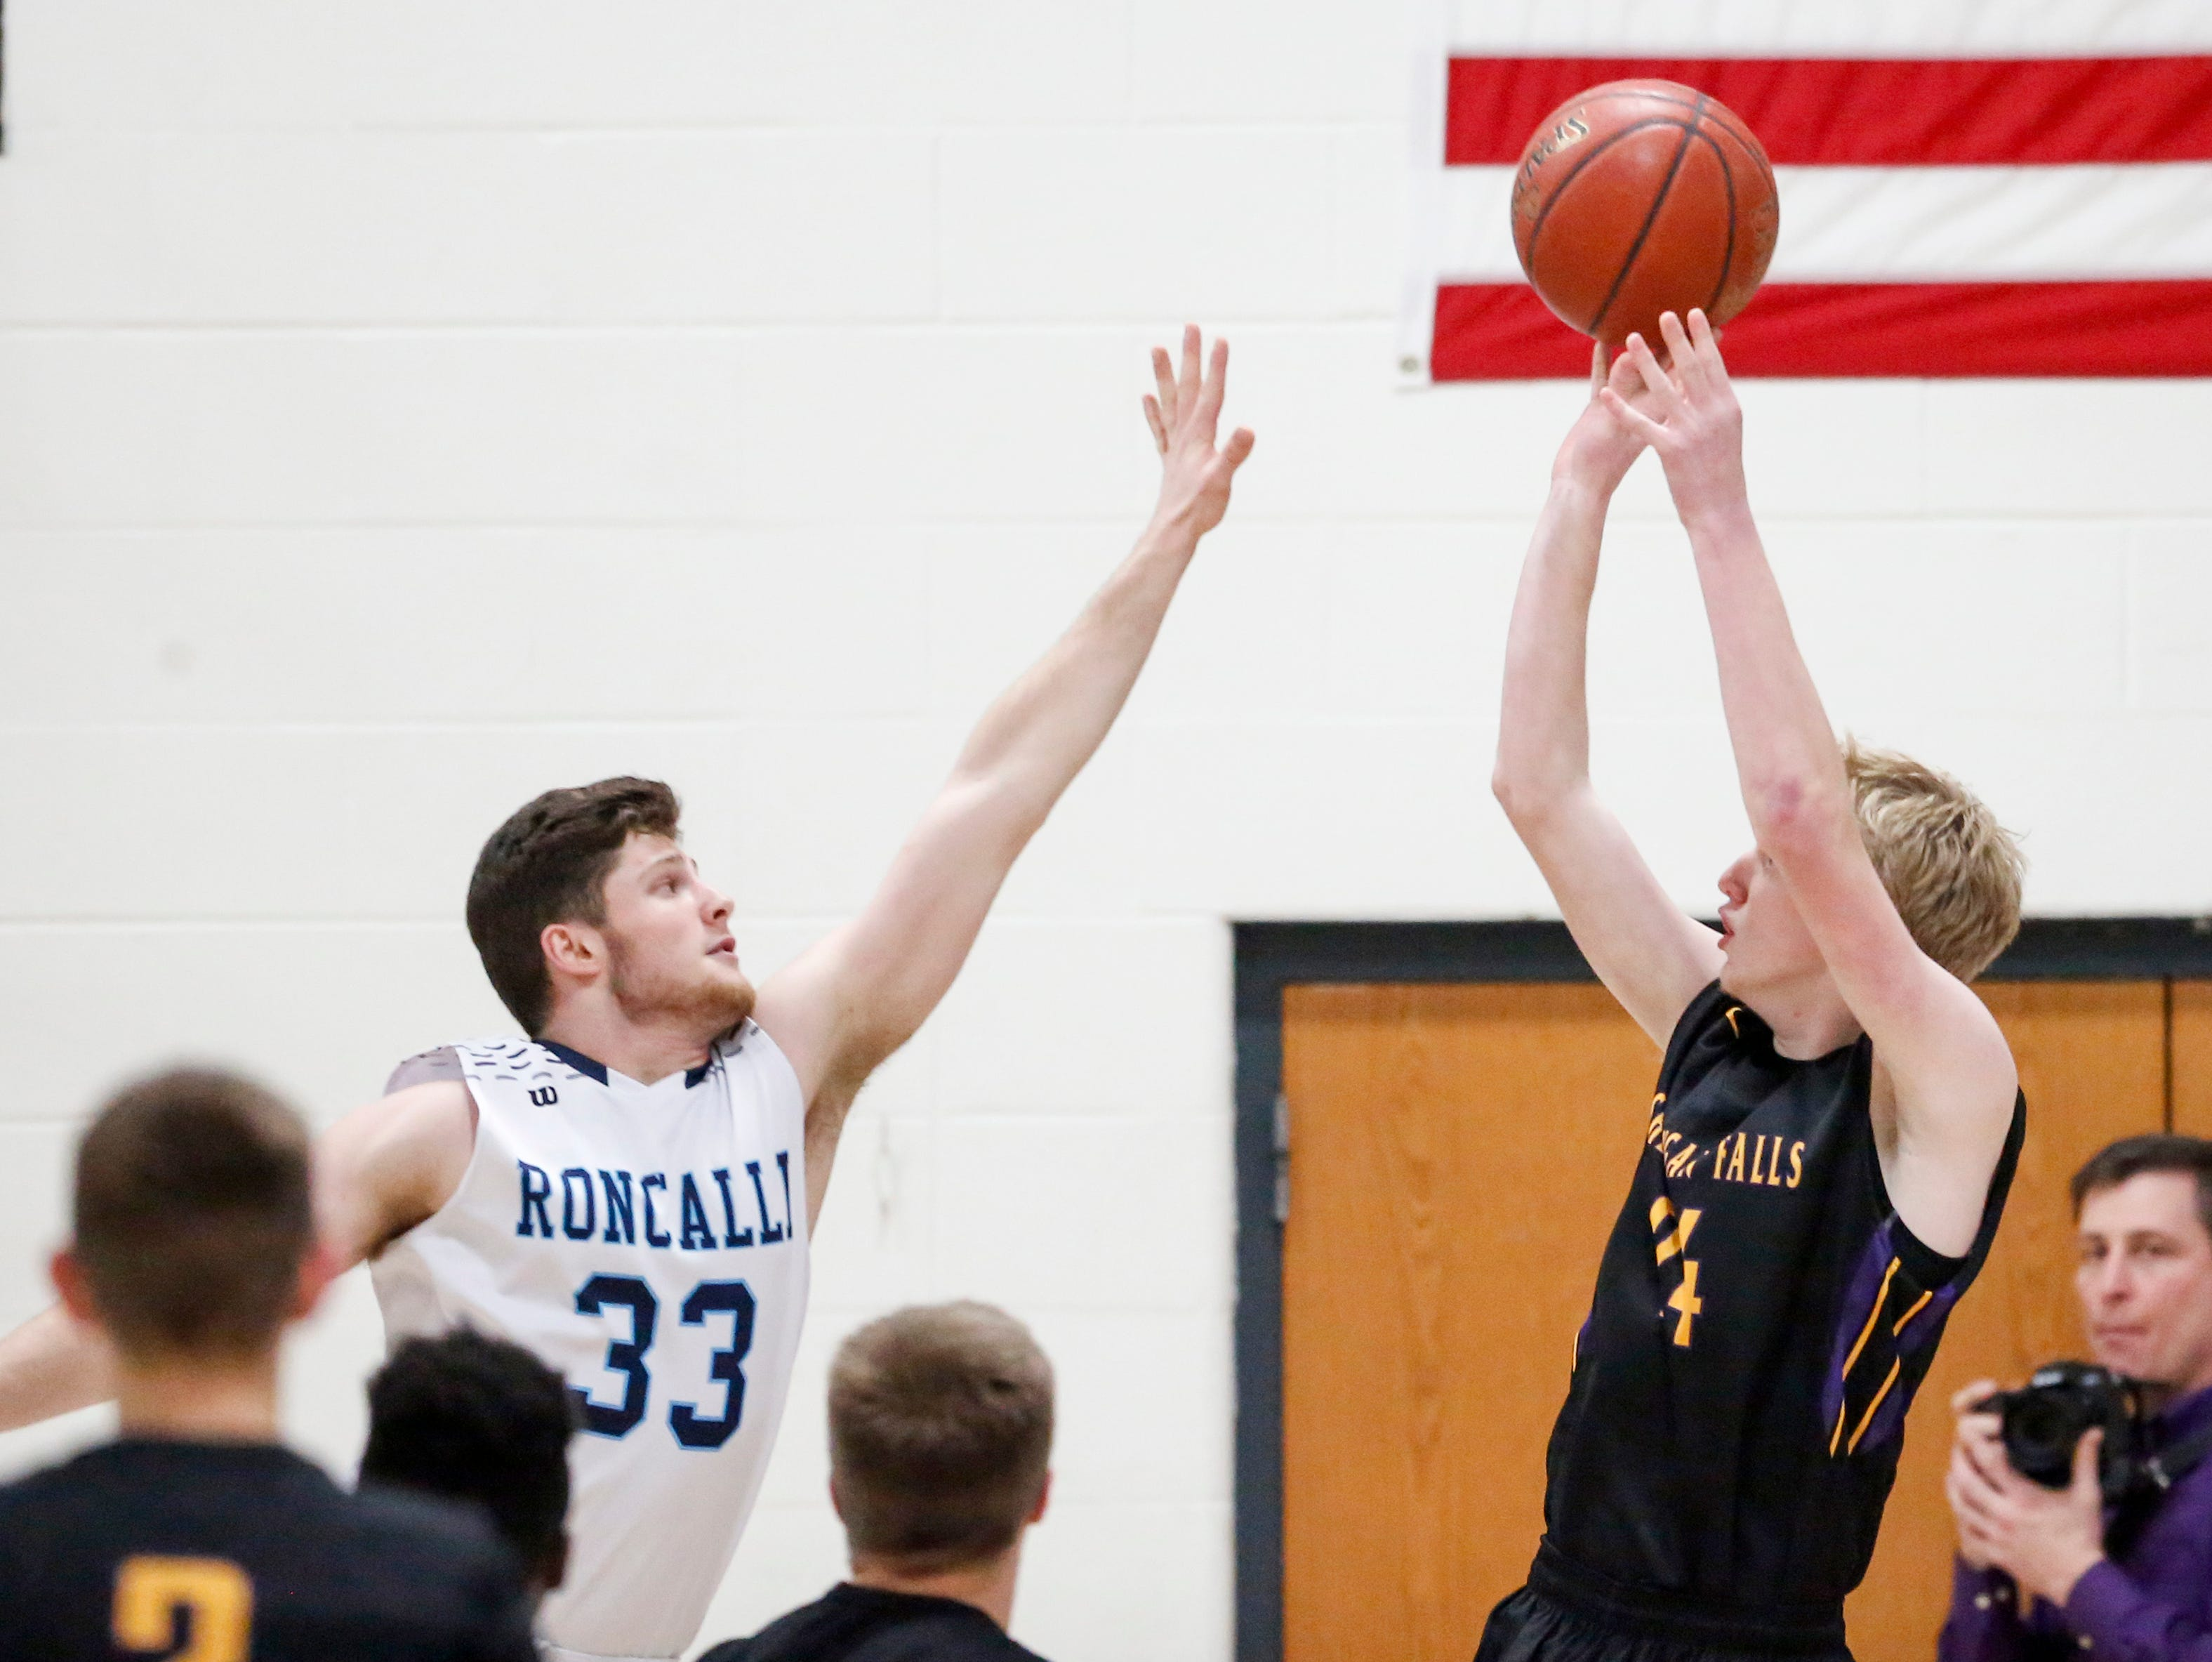 Sheboygan Falls' Isaac Klemme (24) shoots against Roncalli's David Heinzen during an EWC matchup at Roncalli High School Thursday, January 10, 2019, in Manitowoc, Wis. Joshua Clark/USA TODAY NETWORK-Wisconsin